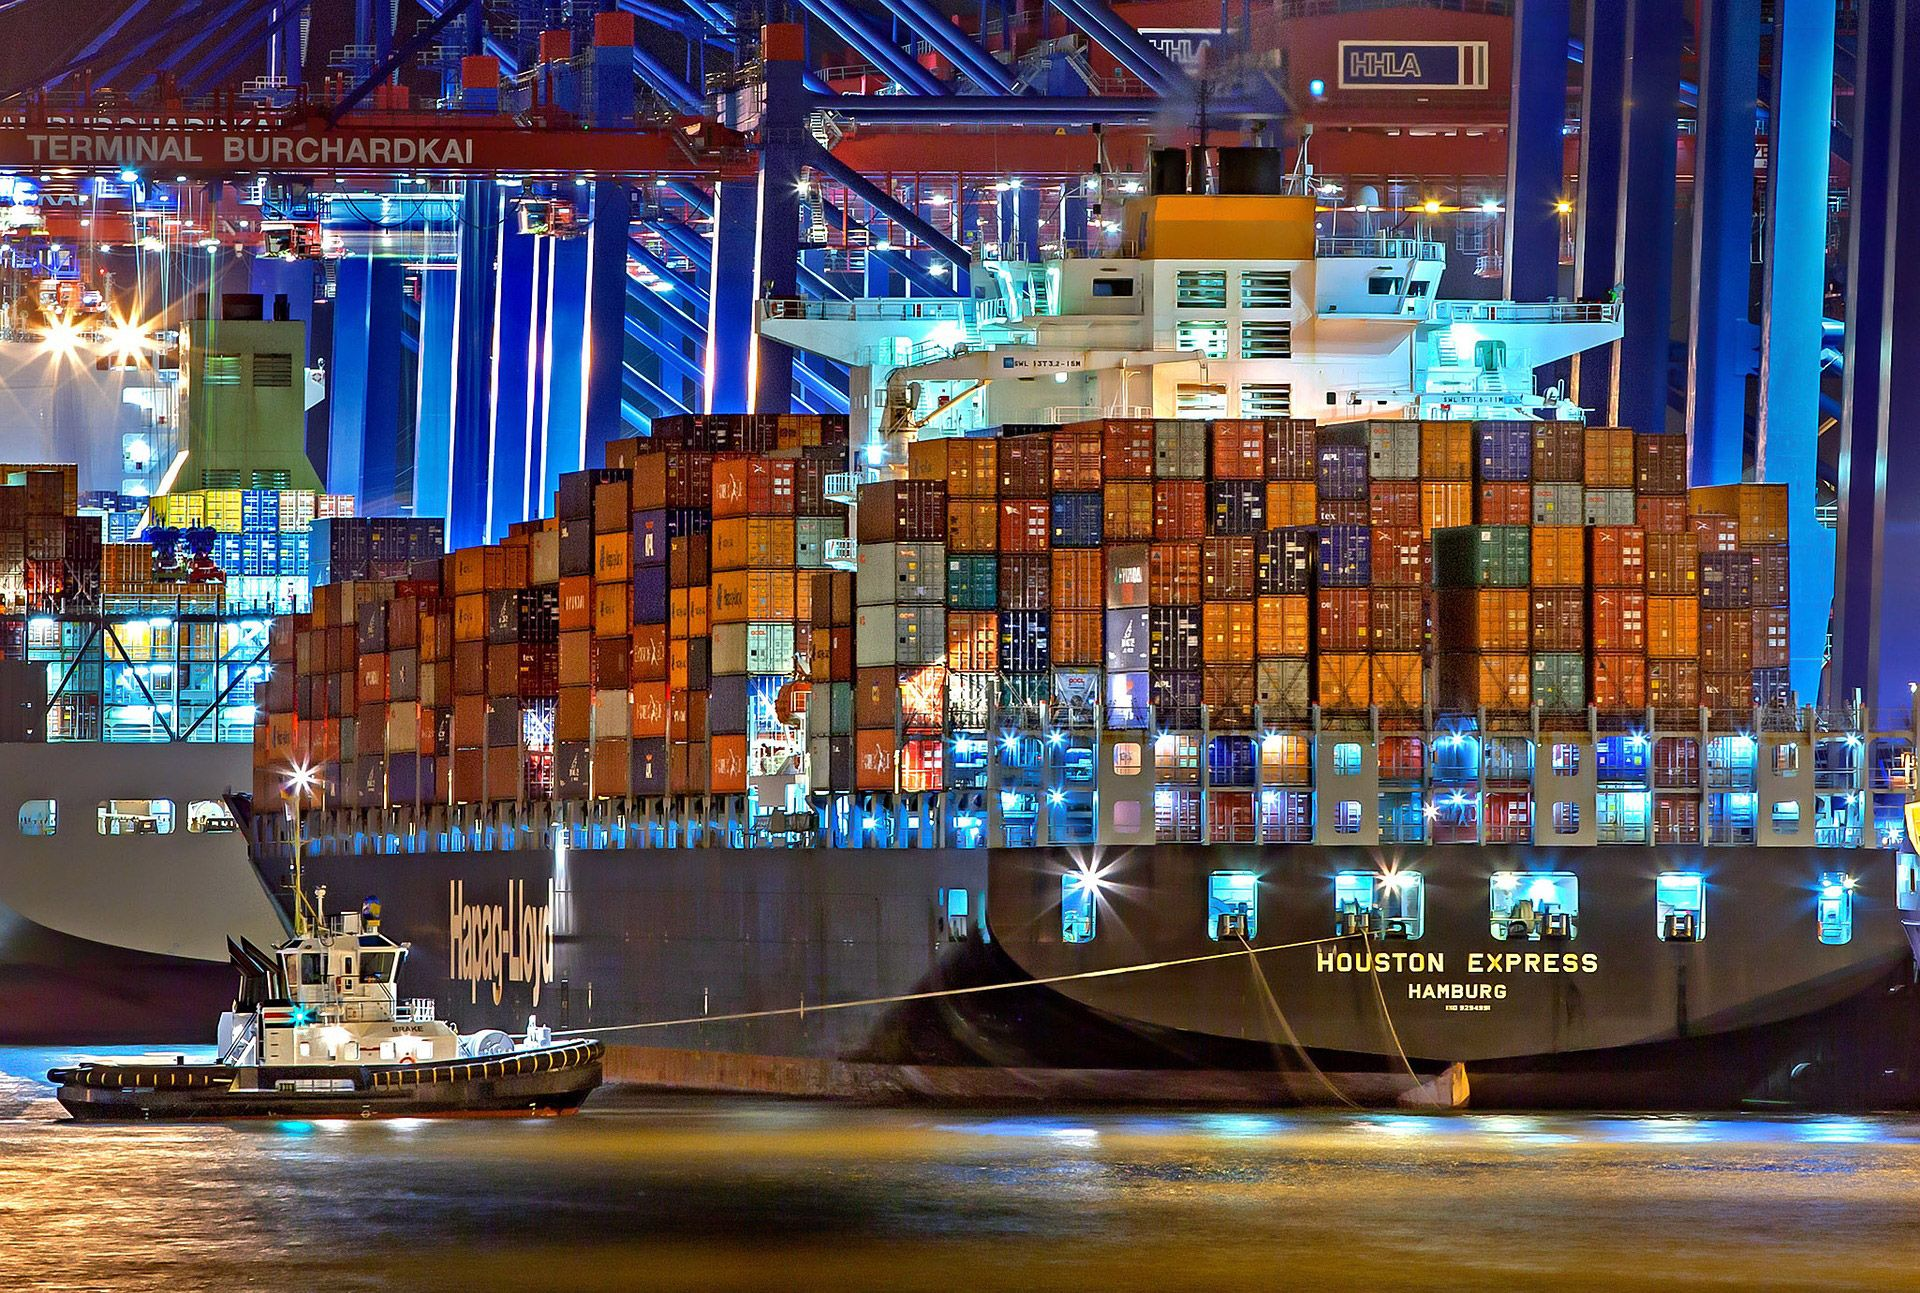 A photo of the 'Houston Express' cargo ship in the port of Hamburg, showing an essential aspect of the supply chain: shipping and logistics.